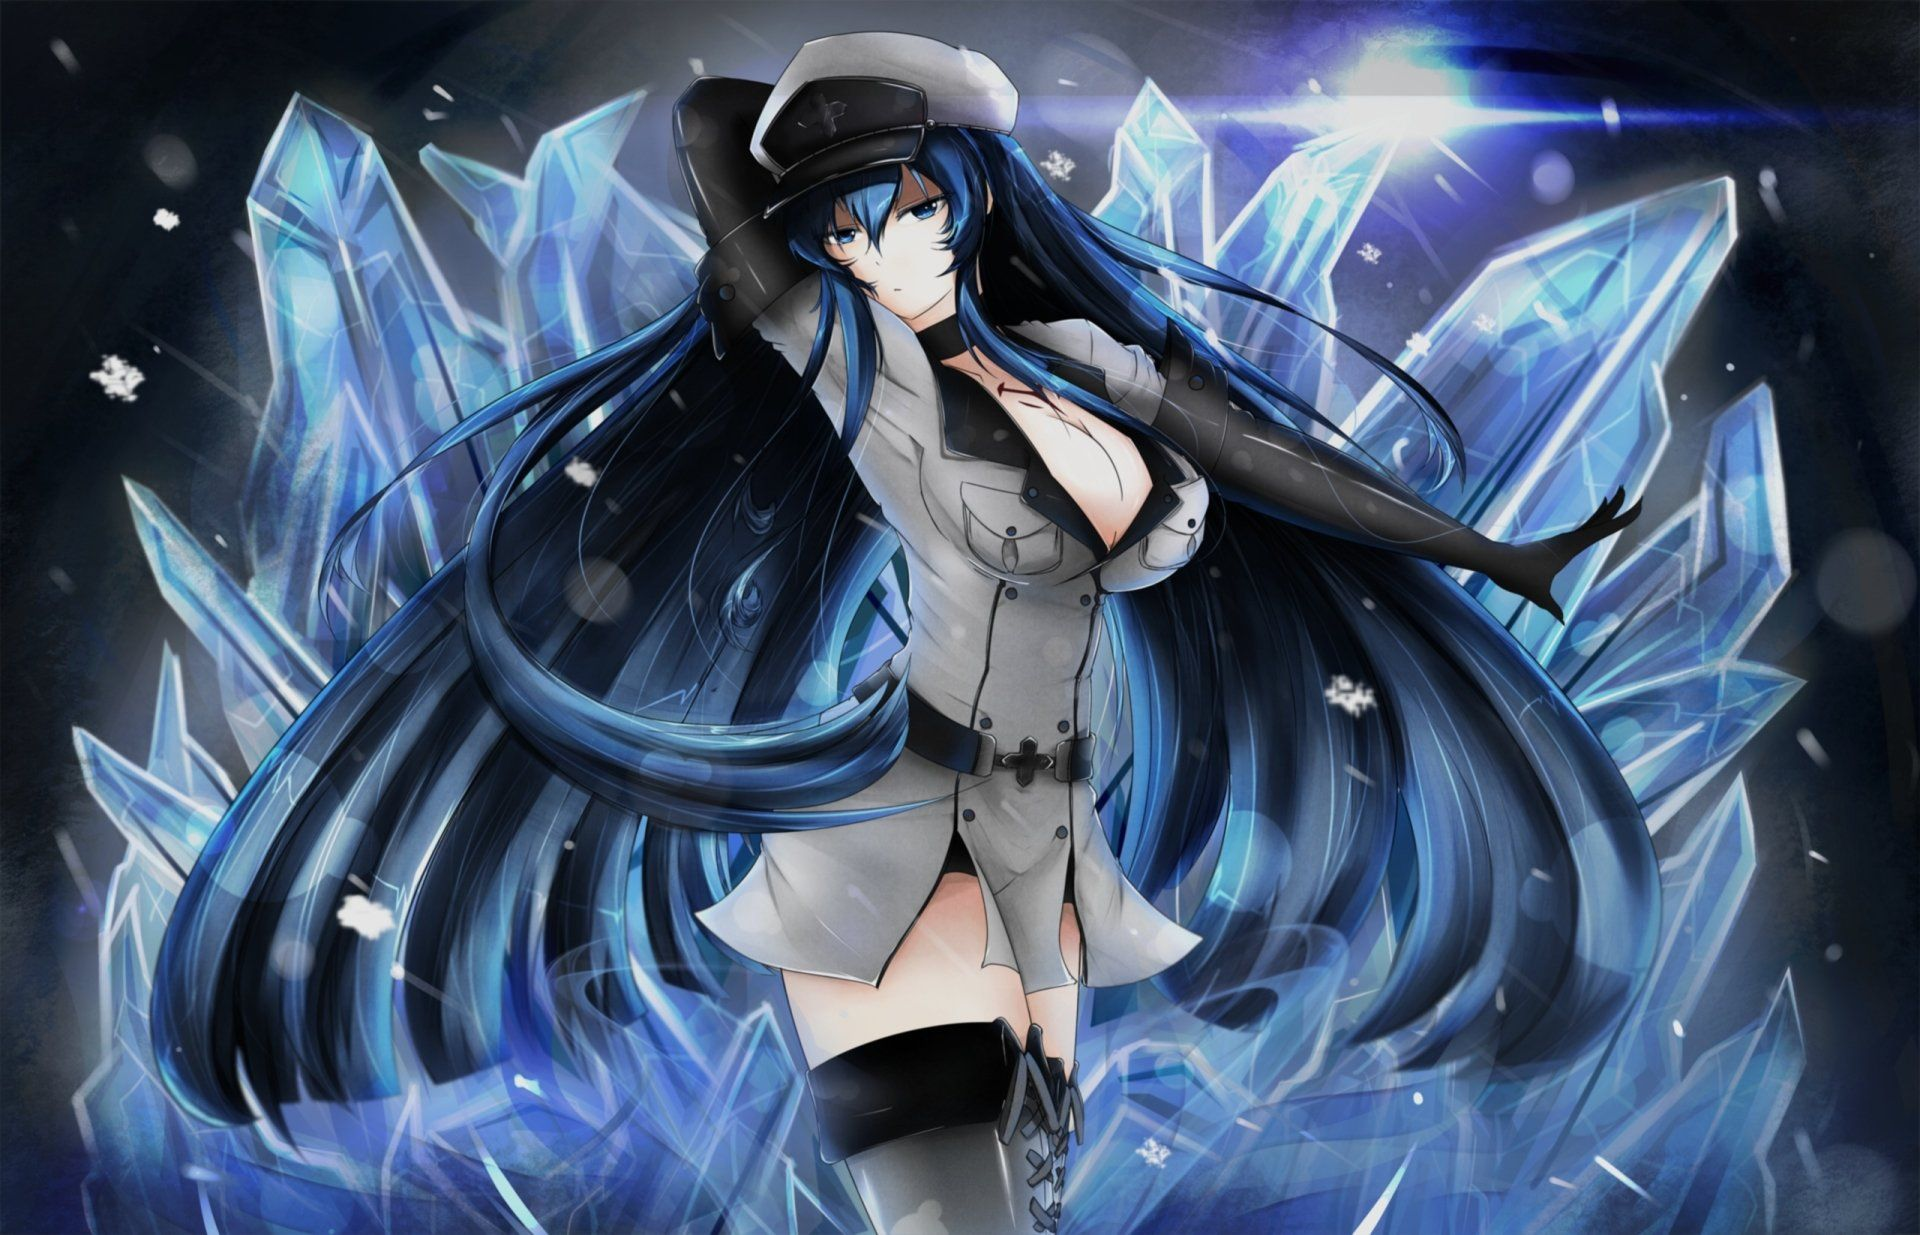 Anime Akame Ga Kill Esdeath Akame Ga Kill Wallpaper Akame Ga